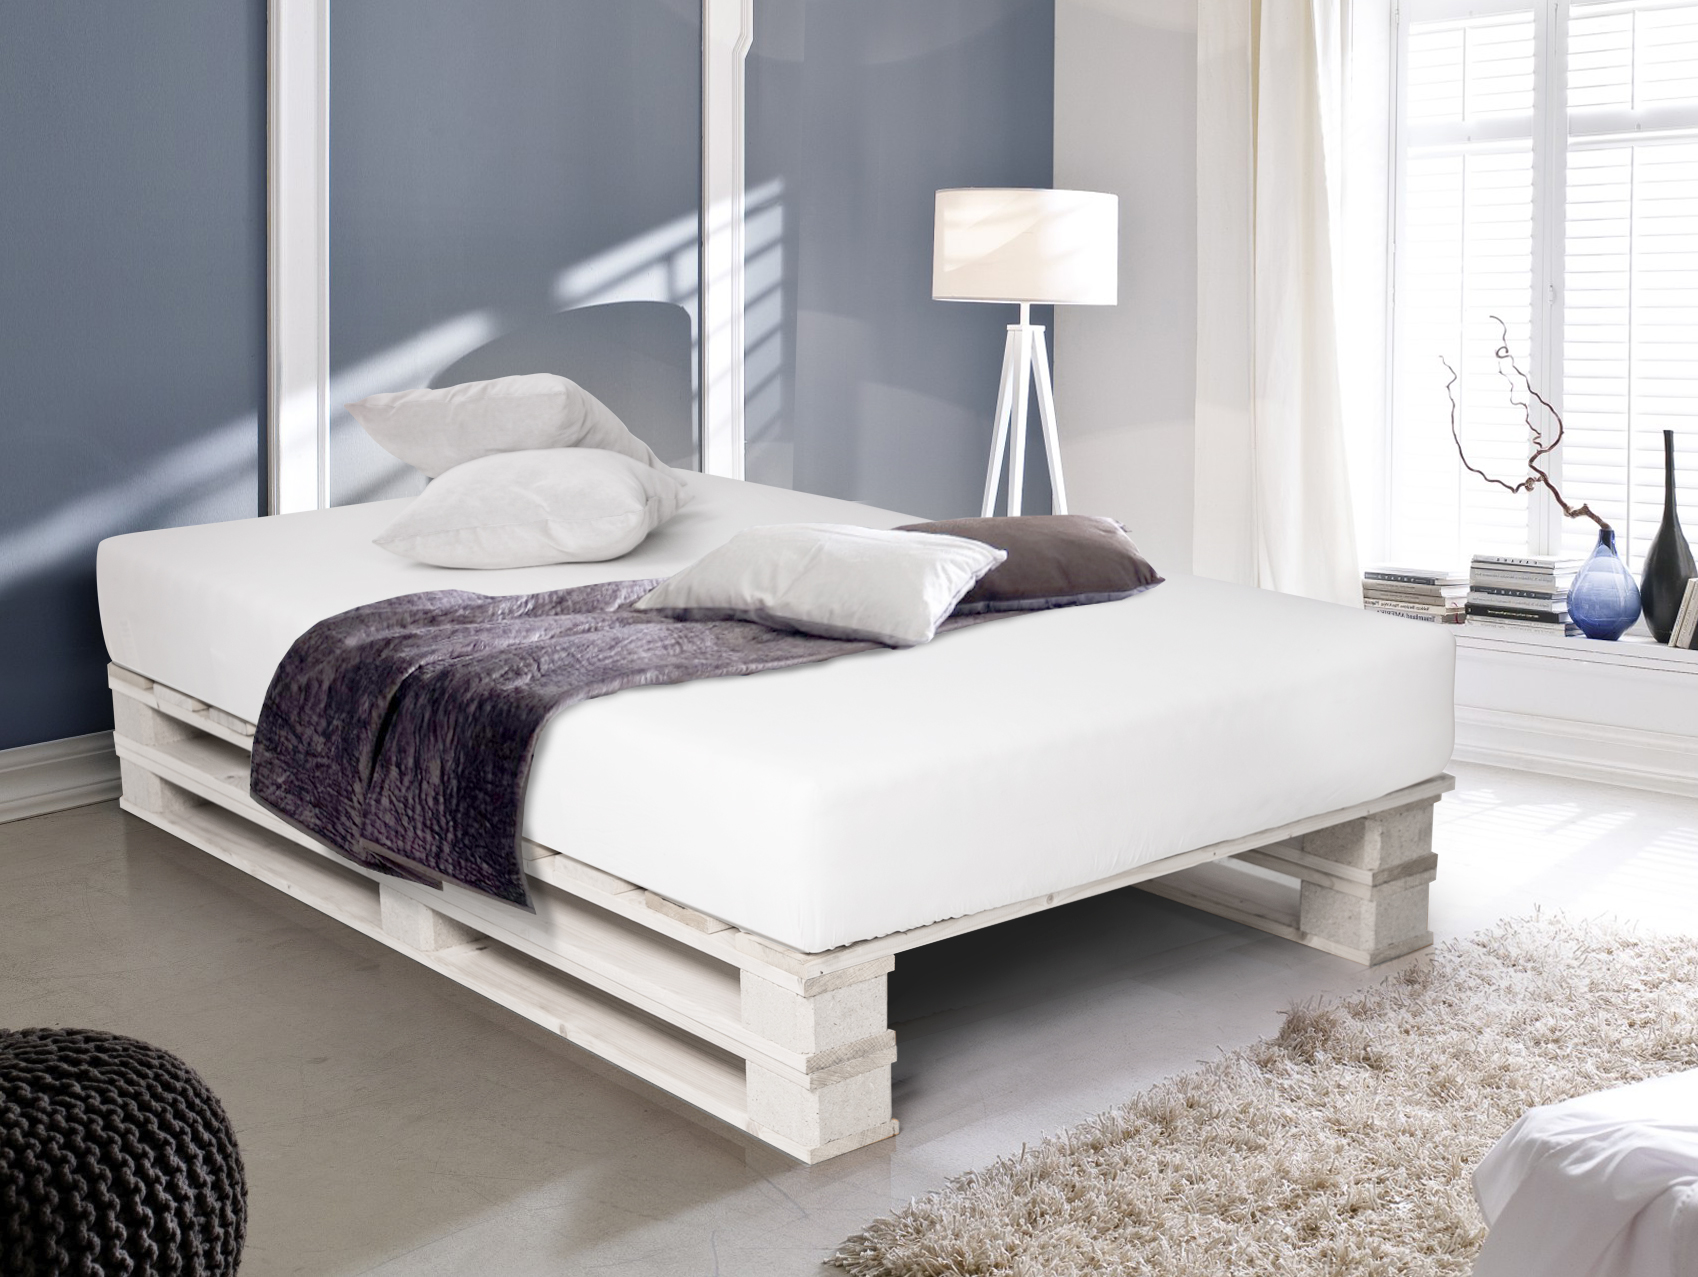 paletti duo weiss lackiert bett aus paletten 90 x 200 cm. Black Bedroom Furniture Sets. Home Design Ideas